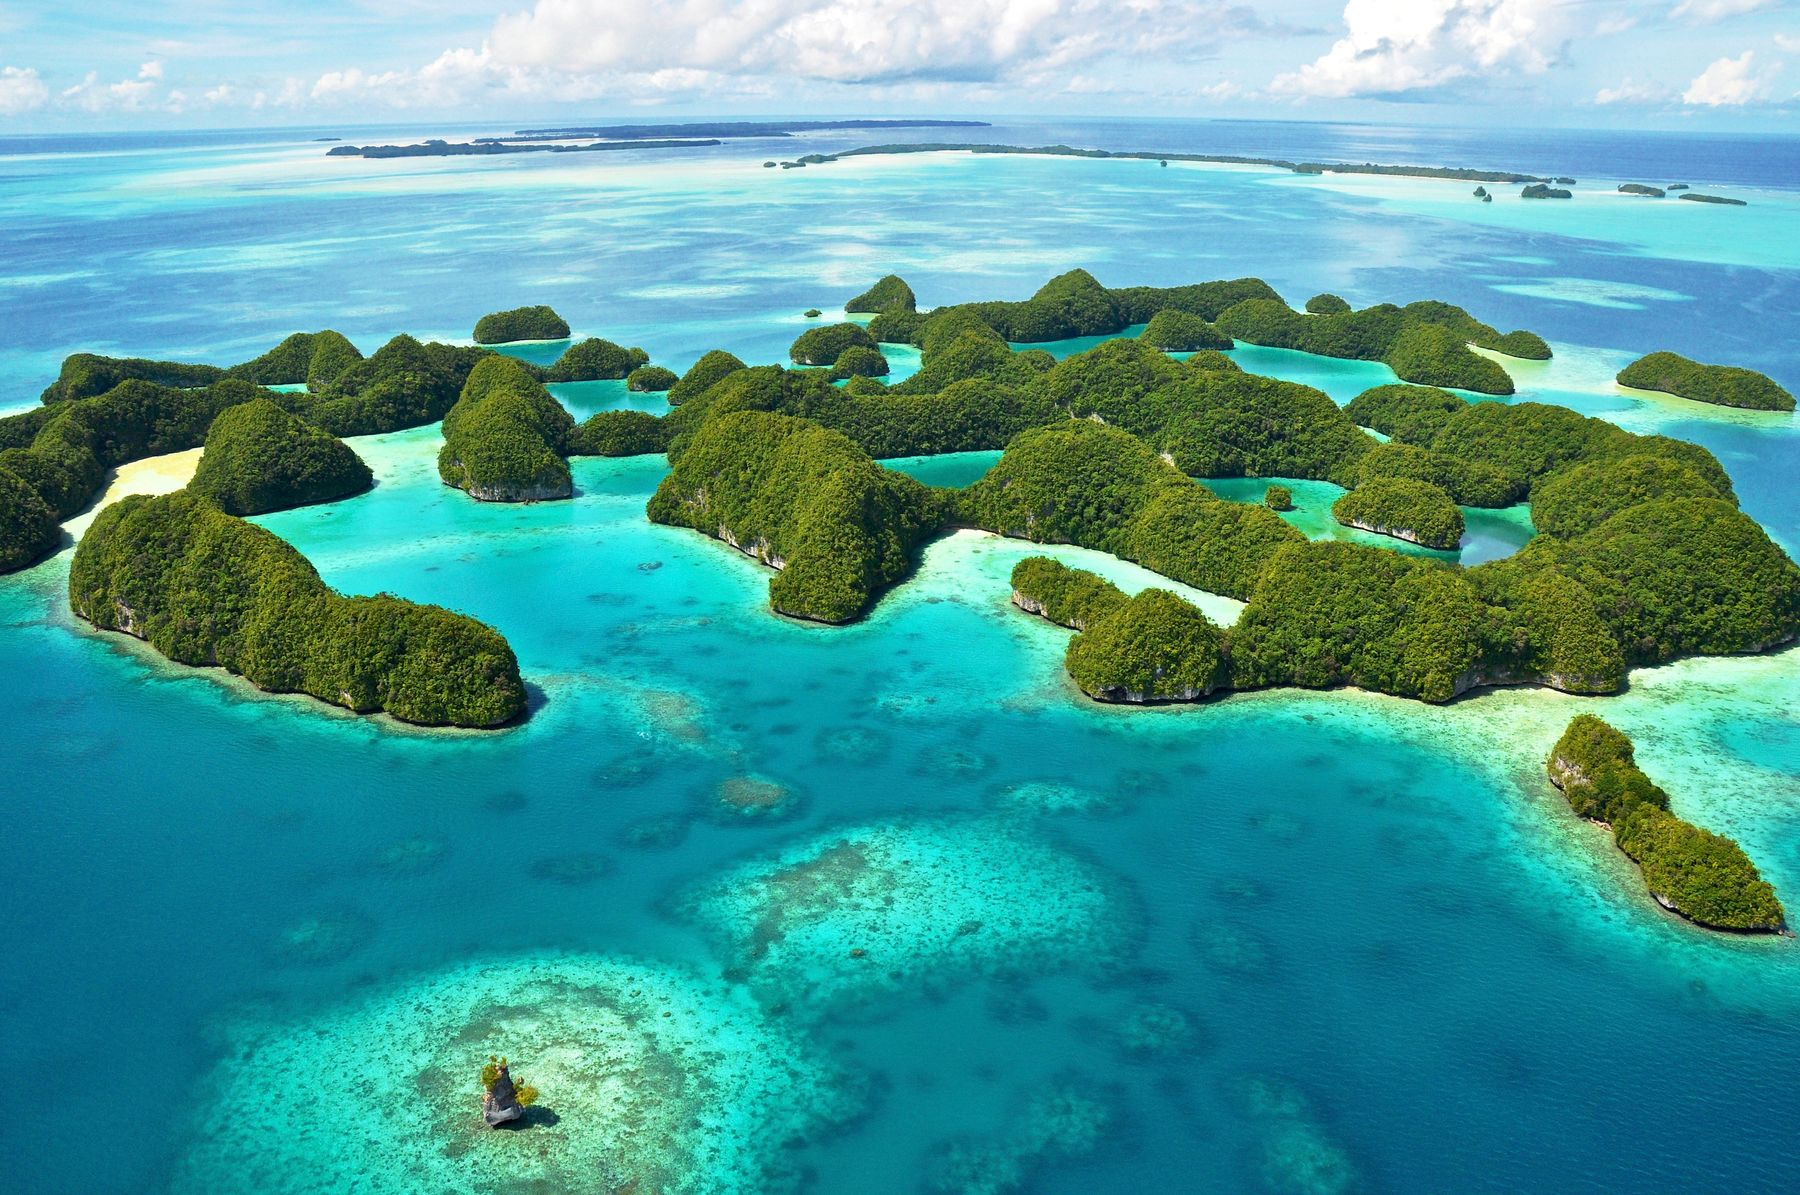 aerial view of the sustainable destination of palau